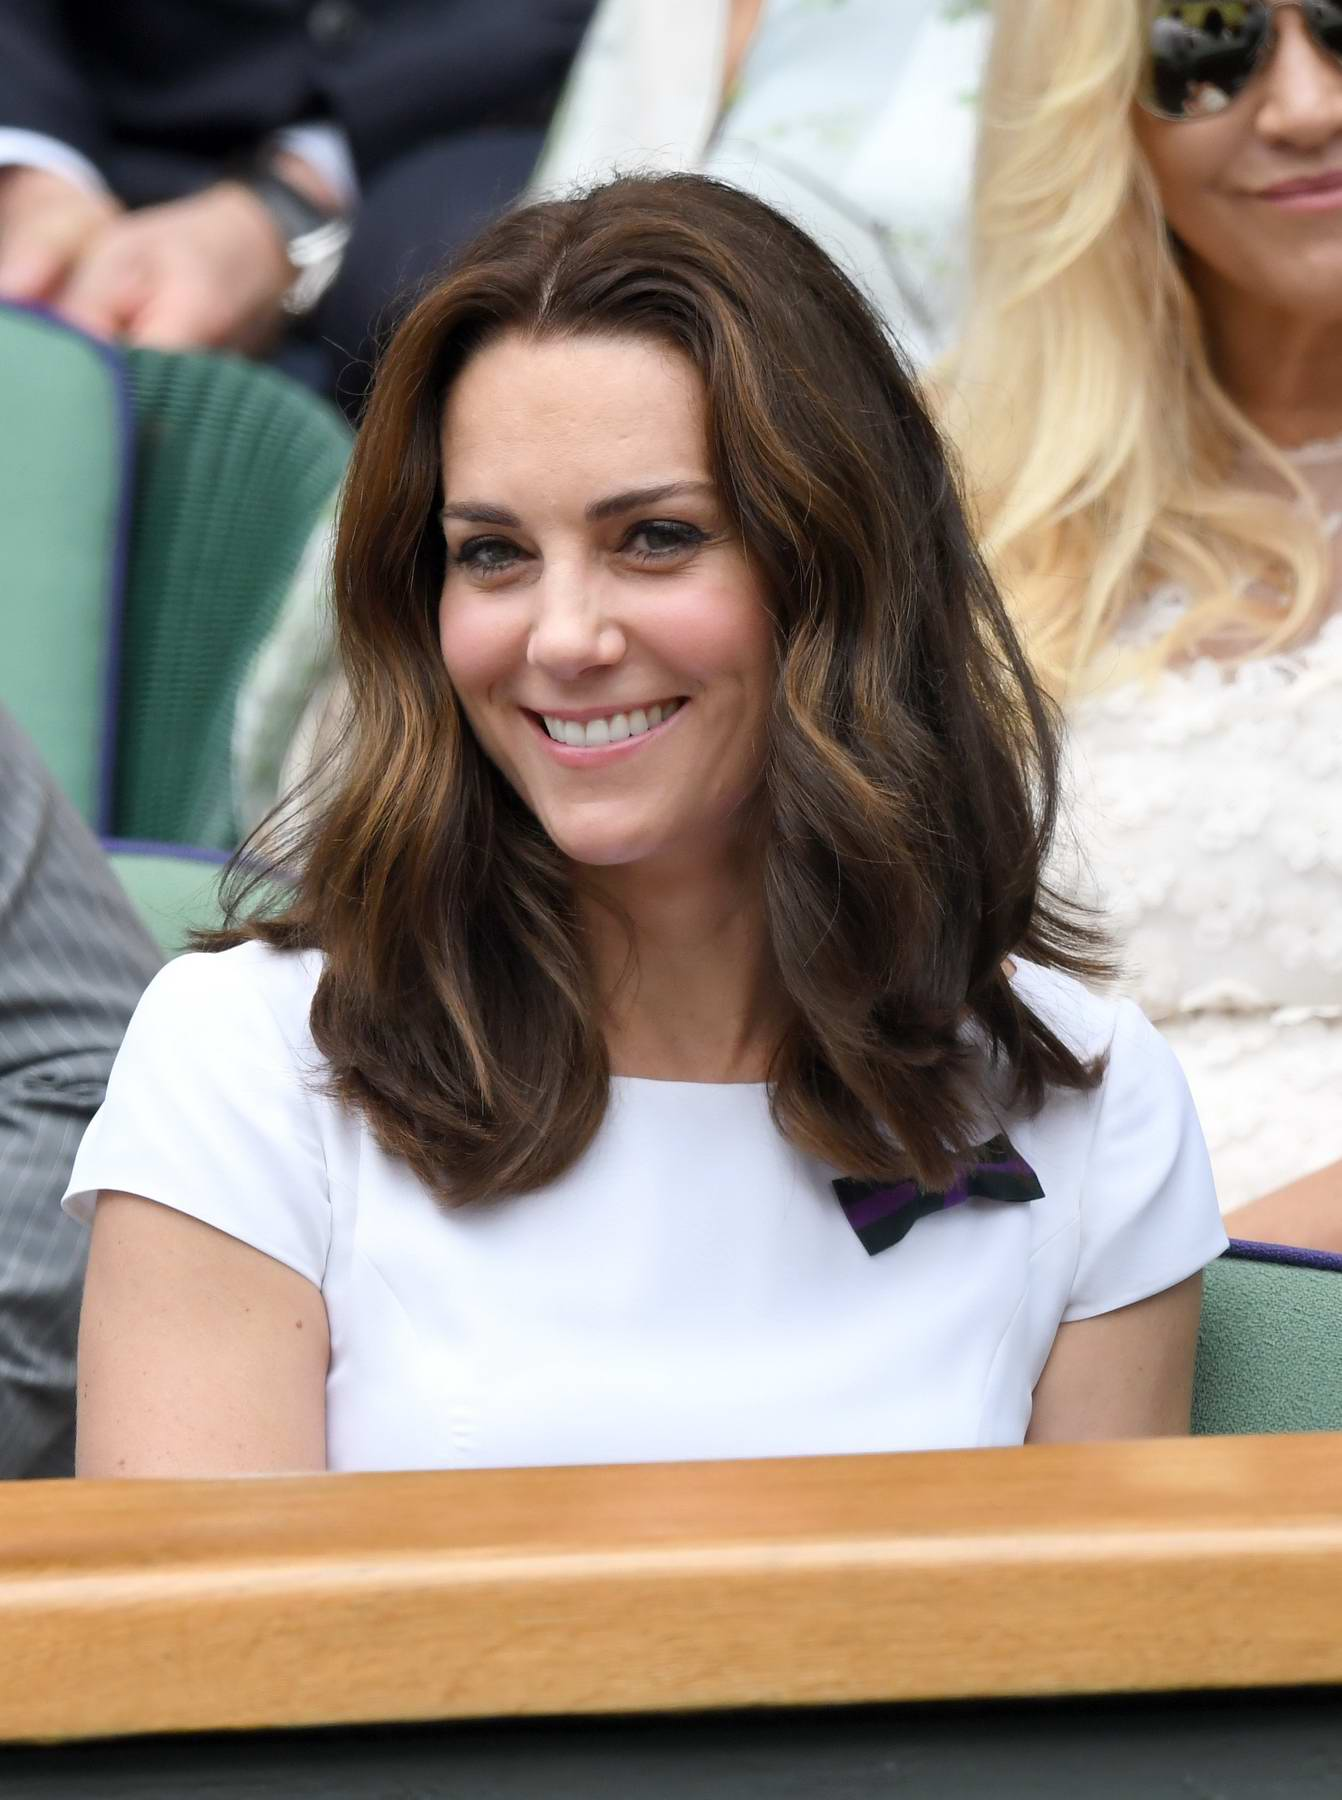 Kate Middleton attends the Men's Singles Final at the Wimbledon 2017 in London